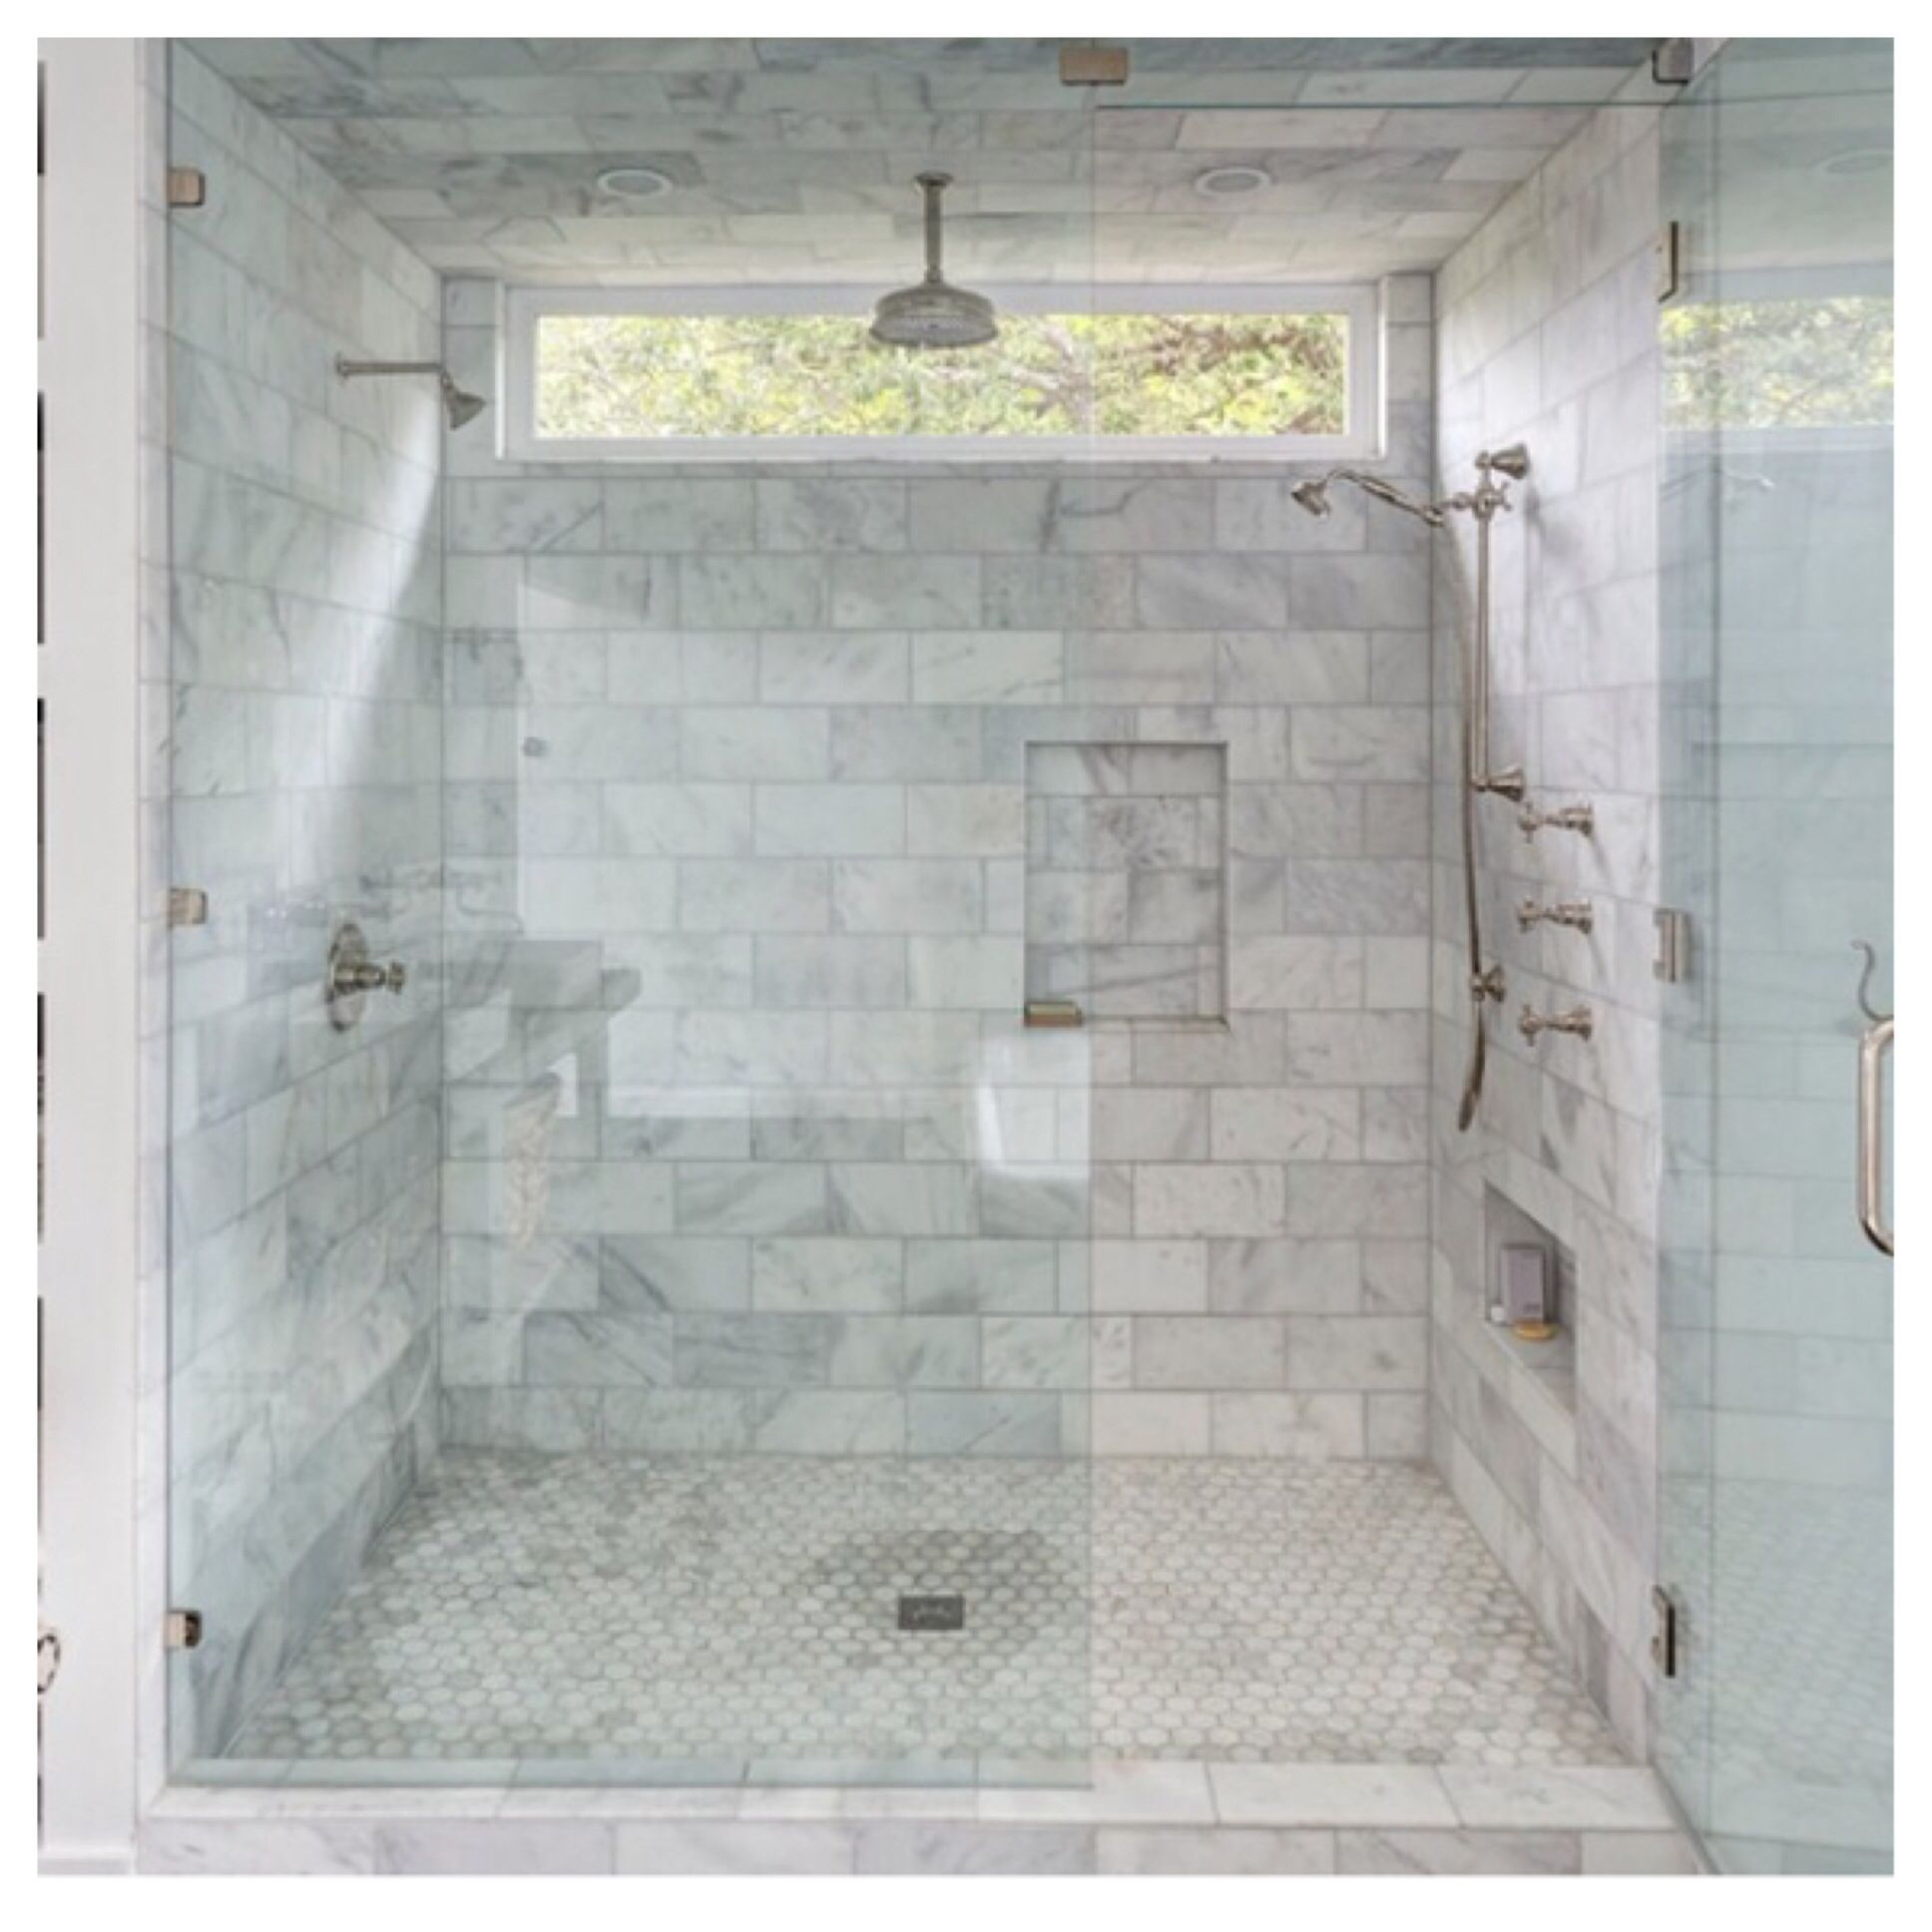 Photo Album For Website I like the dark floors with the lighter tile in this bathroom shower Storage shelves to the side of the shower Bouldin Creek Residence by Silverthorn